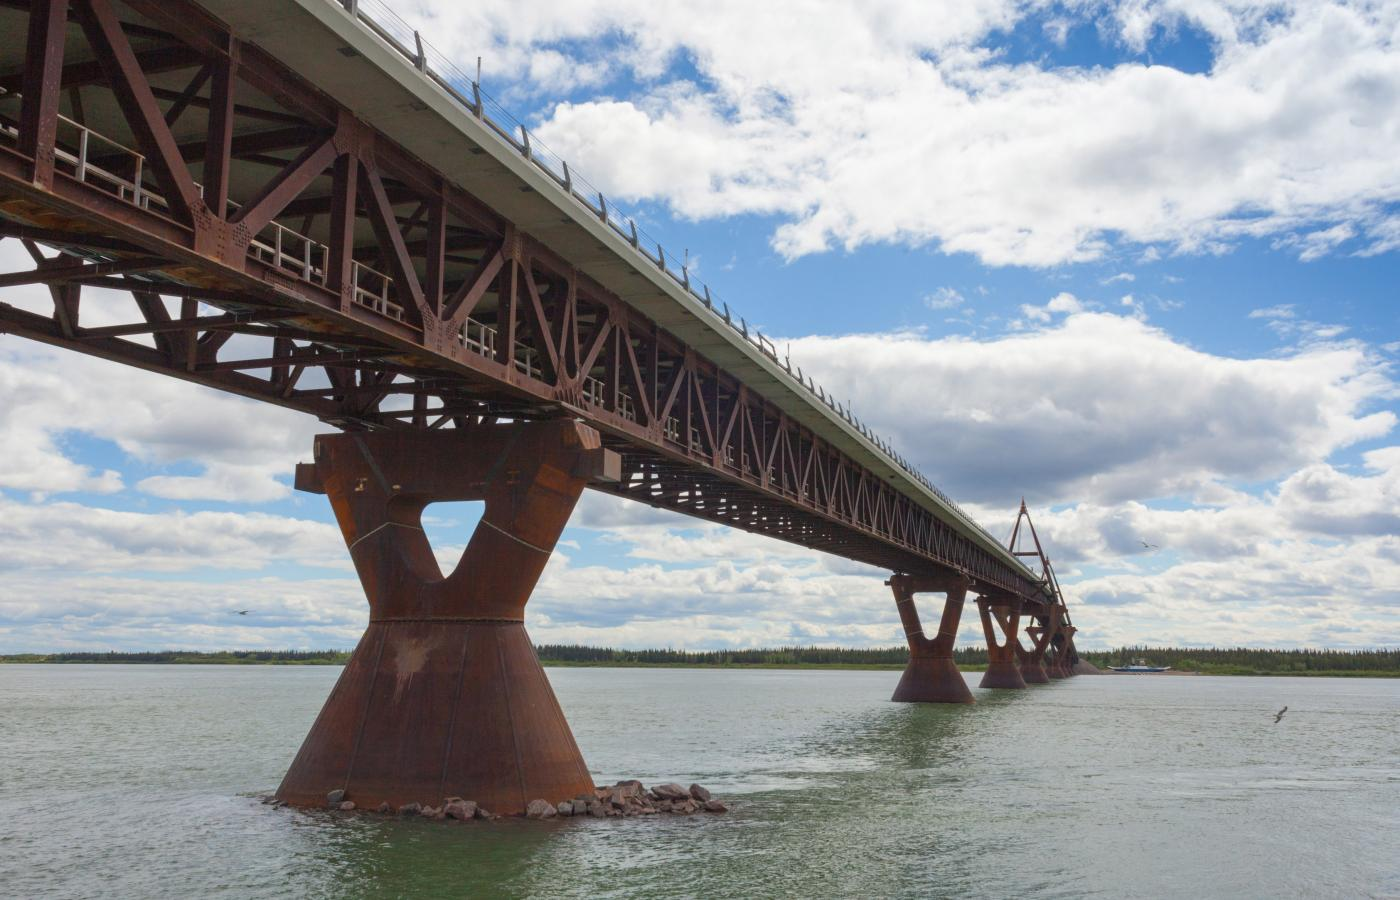 The Deh Cho bridge across the Mackenzie River near Fort Providence, NWT